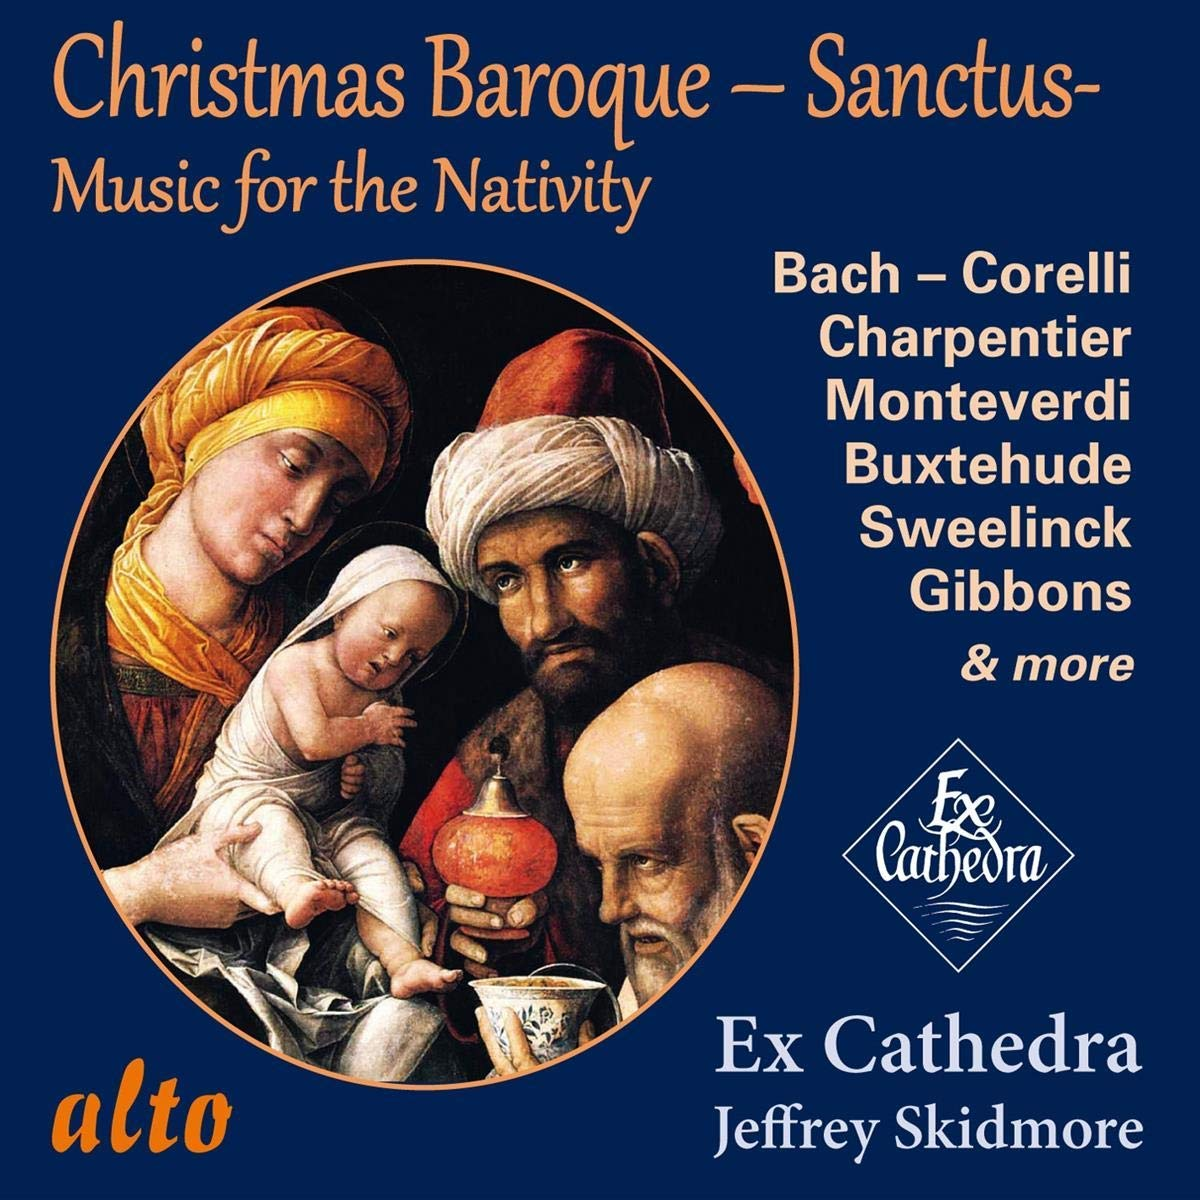 CHRISTMAS BAROQUE SANCTUS: MUSIC FOR THE NATIVITY - EX CATHEDRA